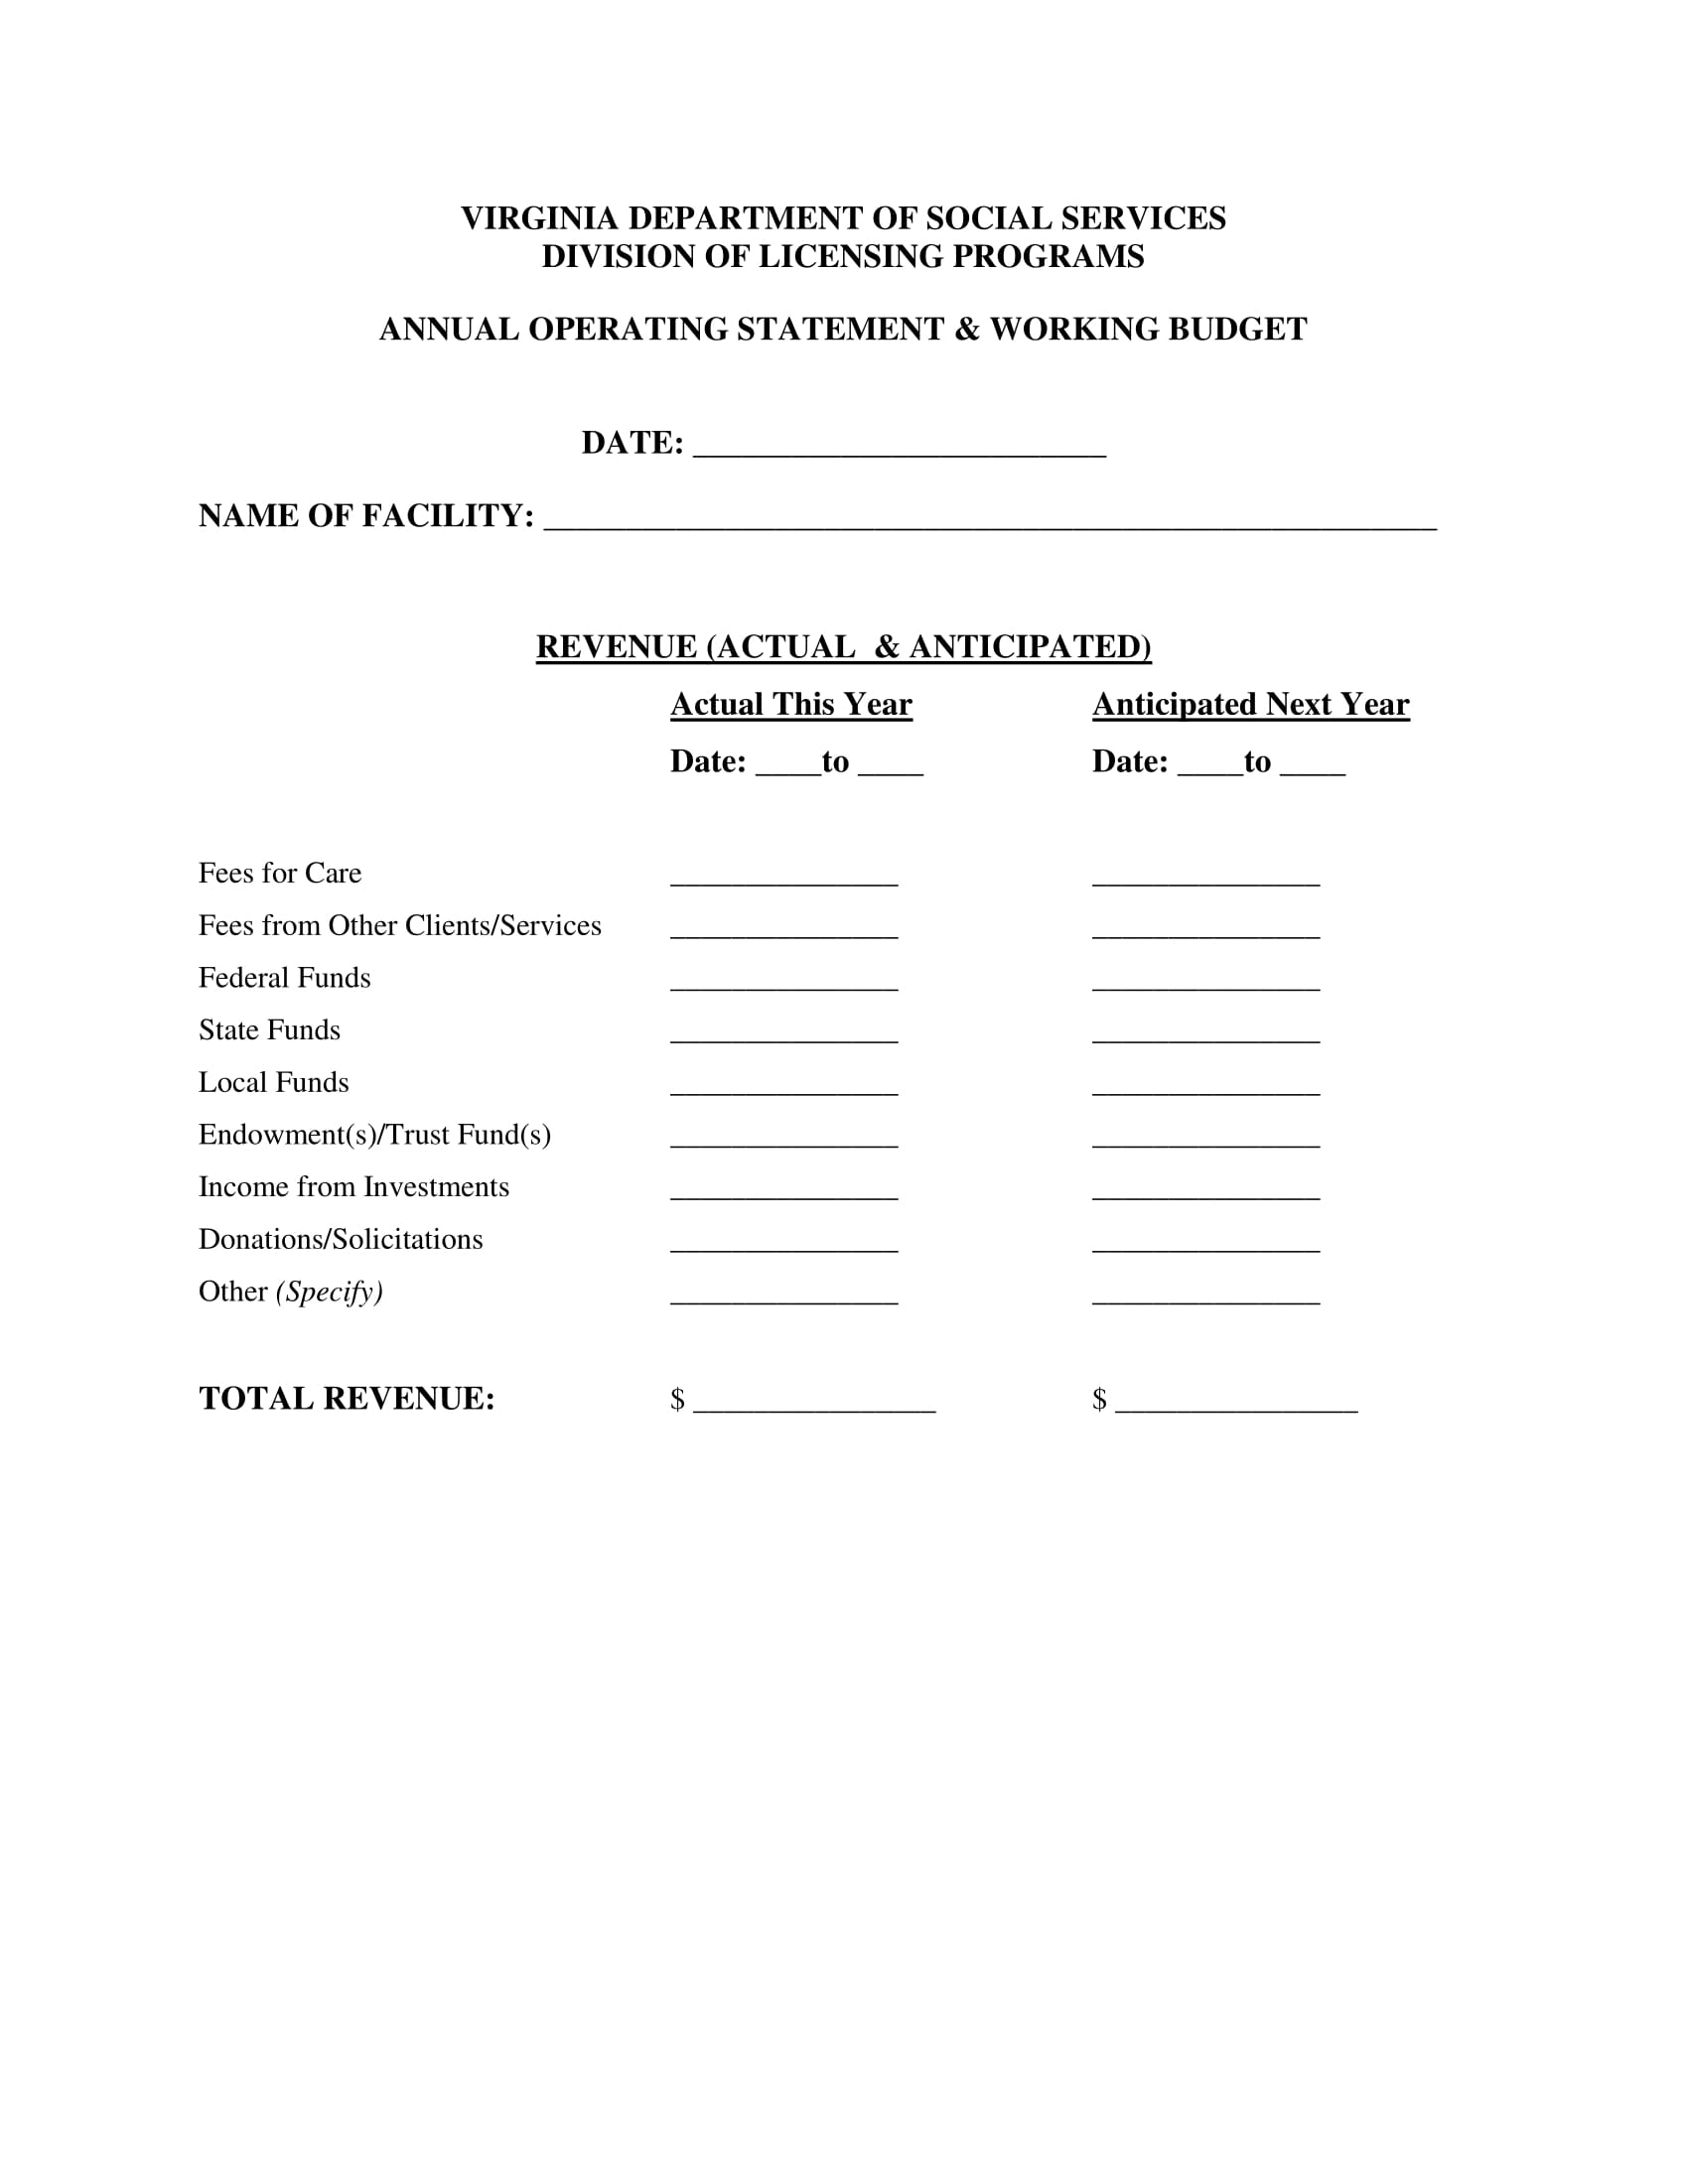 annual operating statement form 6